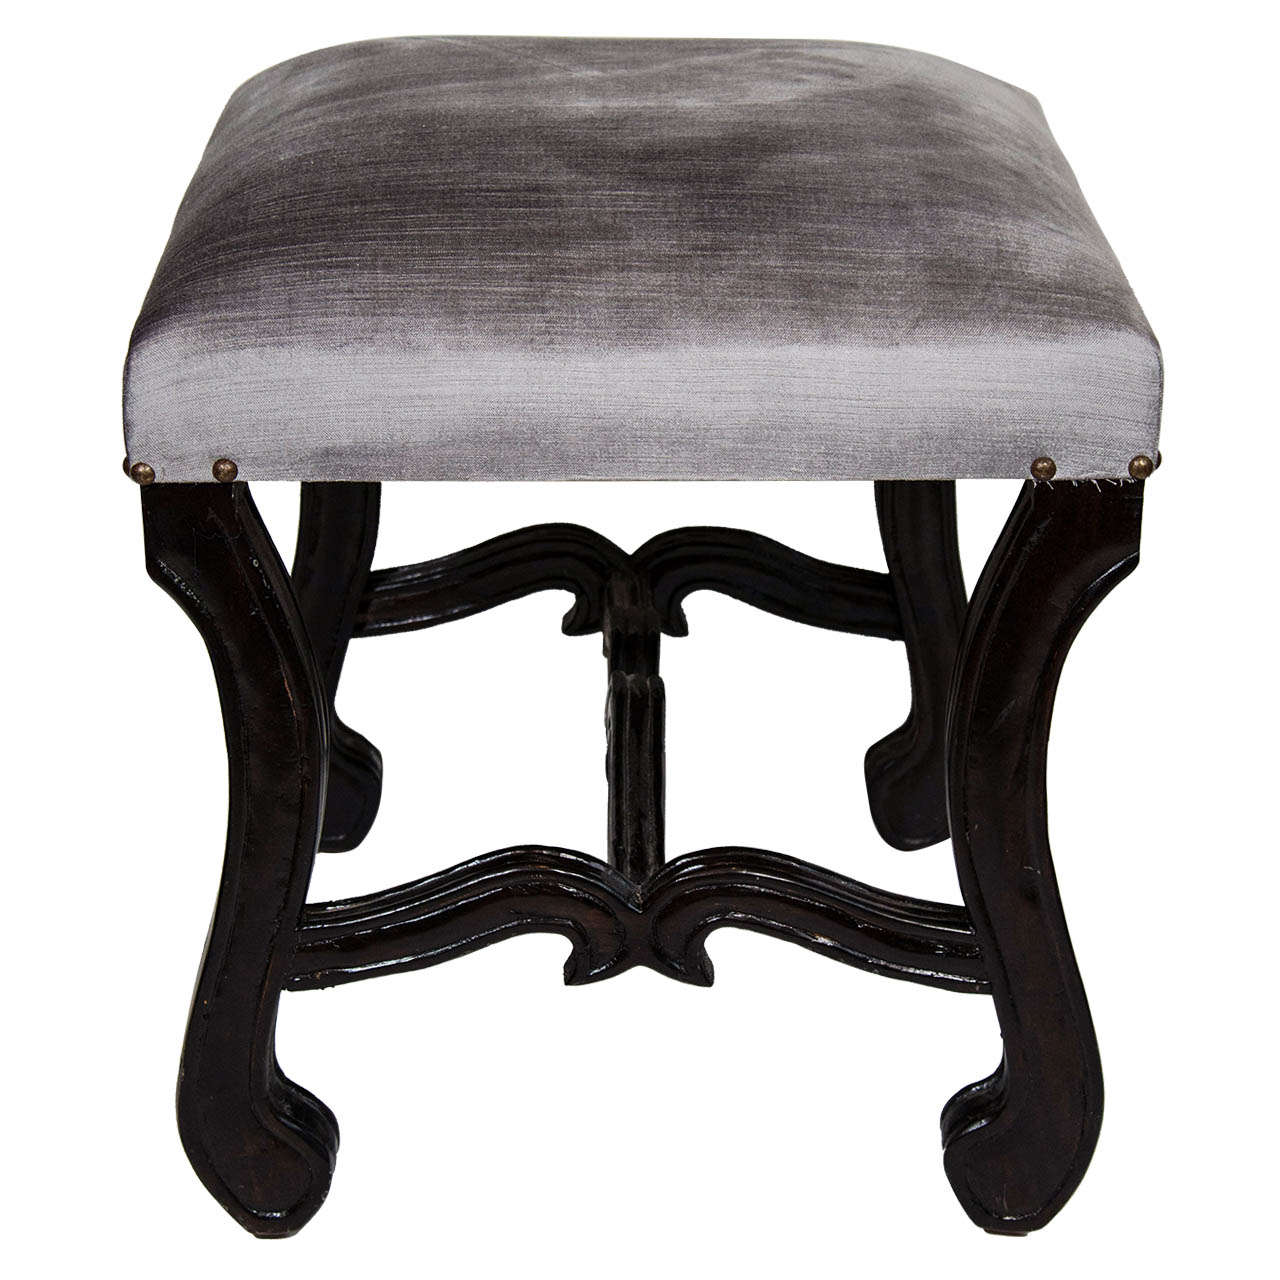 Elegant mid-century vanity stool with hand-carved walnut wood base in ebonized finish. Newly upholstered in luxe grey velvet with antique brass stud details. The bench features scrolled cabriole leg design and stylized cross stretcher with carved